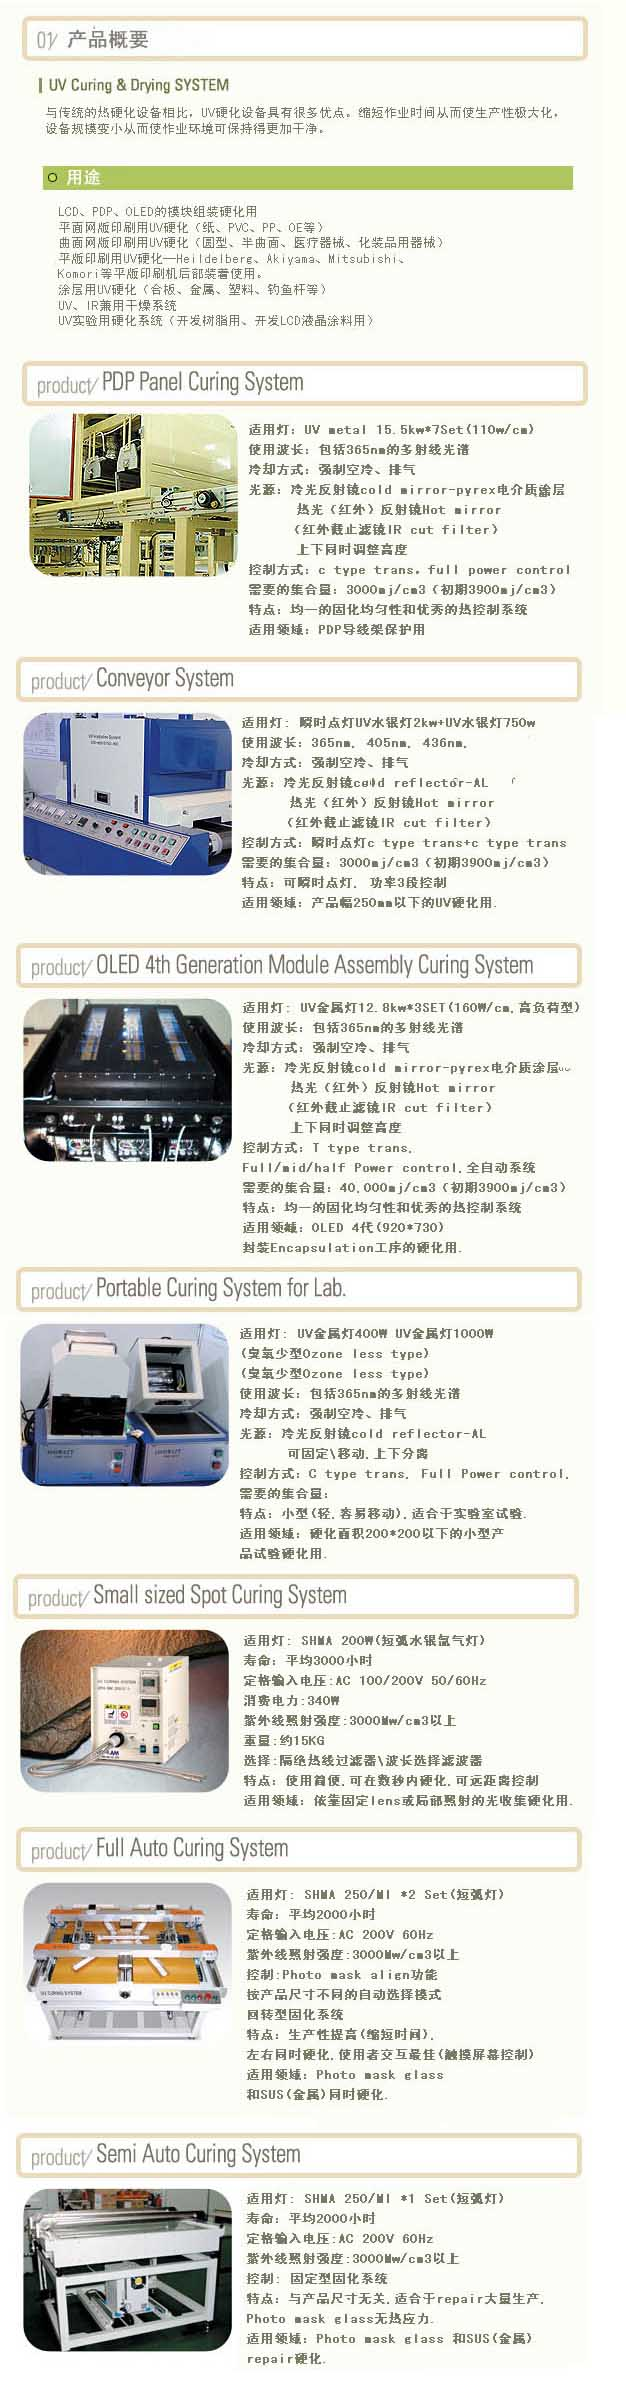 UV Curing&Drying System